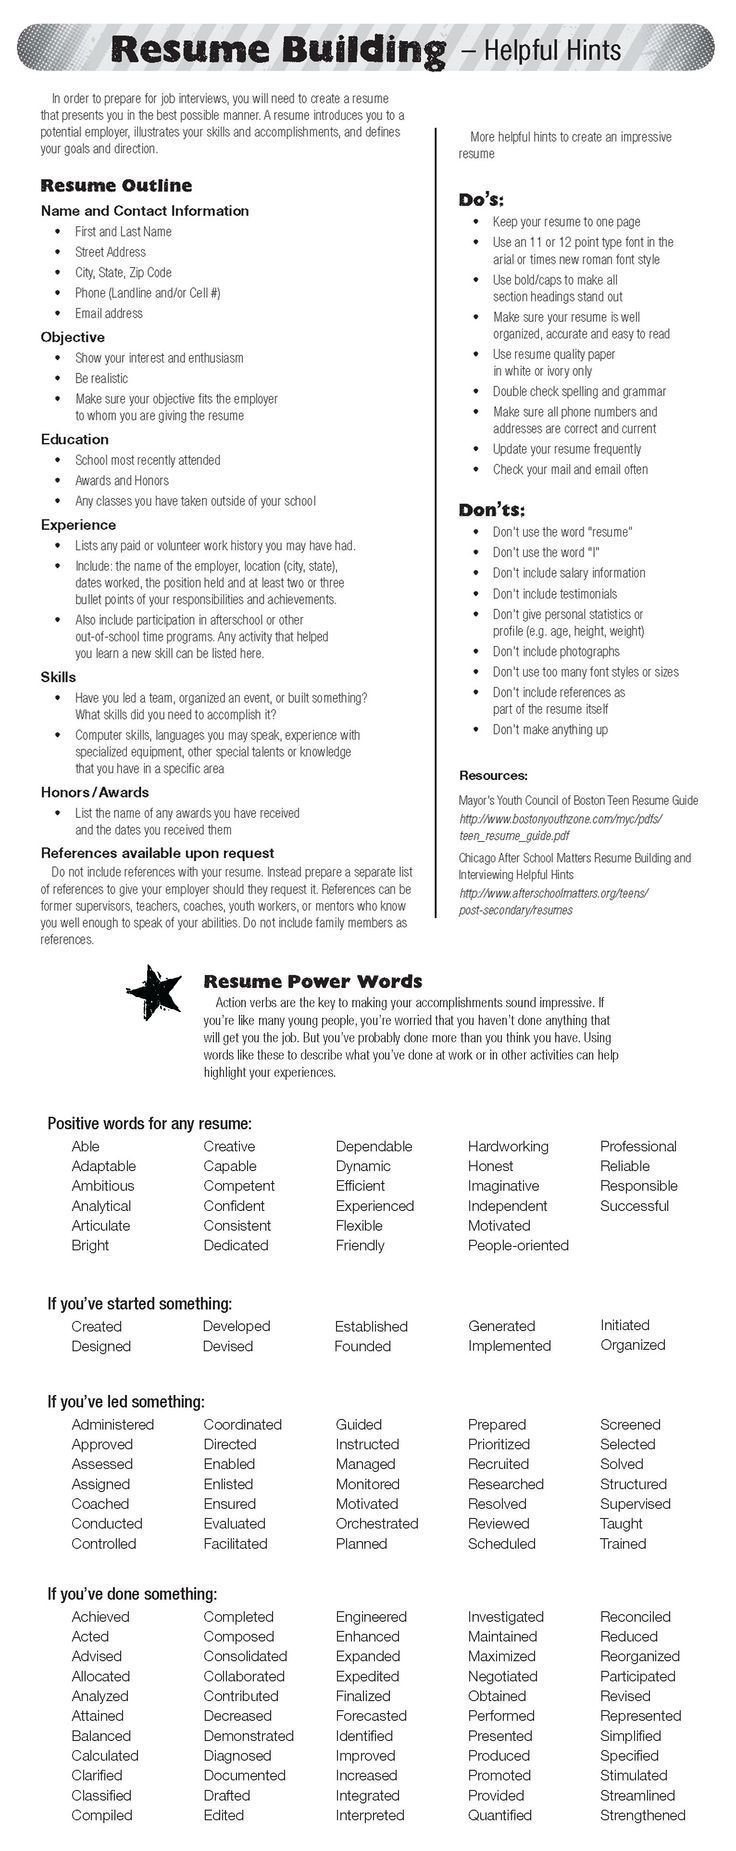 List Of Resume Skills Glamorous 119 Best Job Resume Images On Pinterest  Gym Career And Productivity